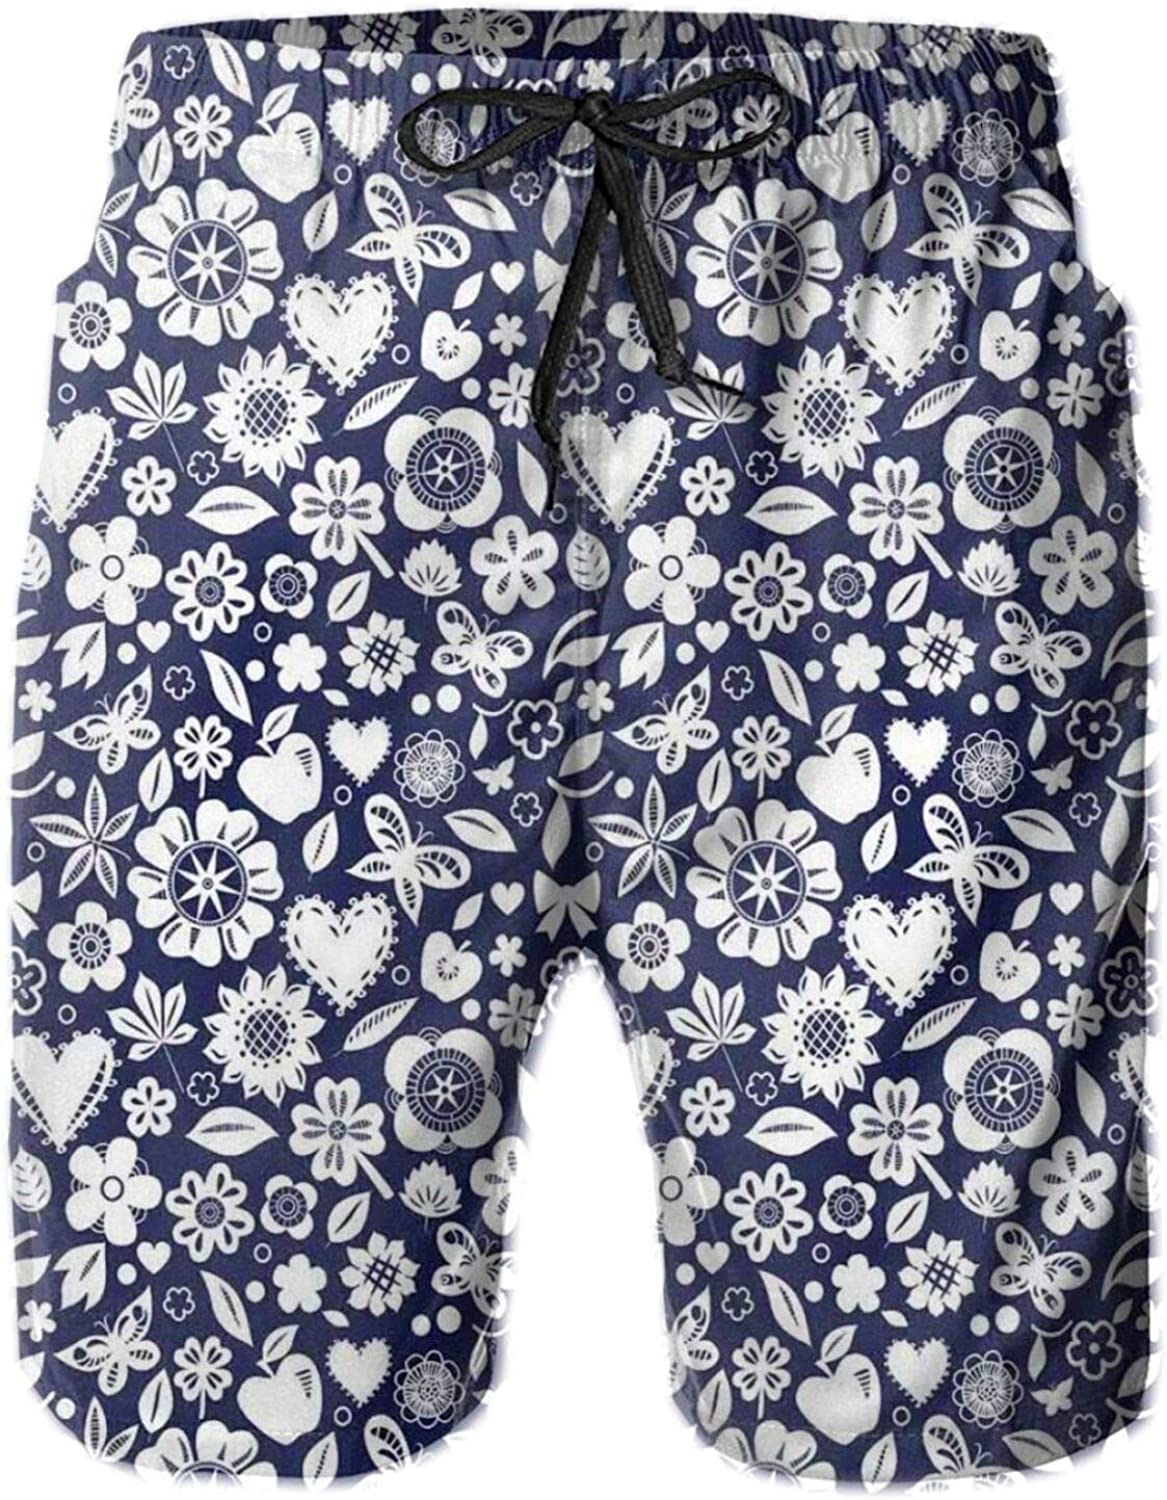 Multi Designed Pattern with Hearts Butterflies Leafs and Dots Image Mens Swim Trucks Shorts with Mesh Lining,XL